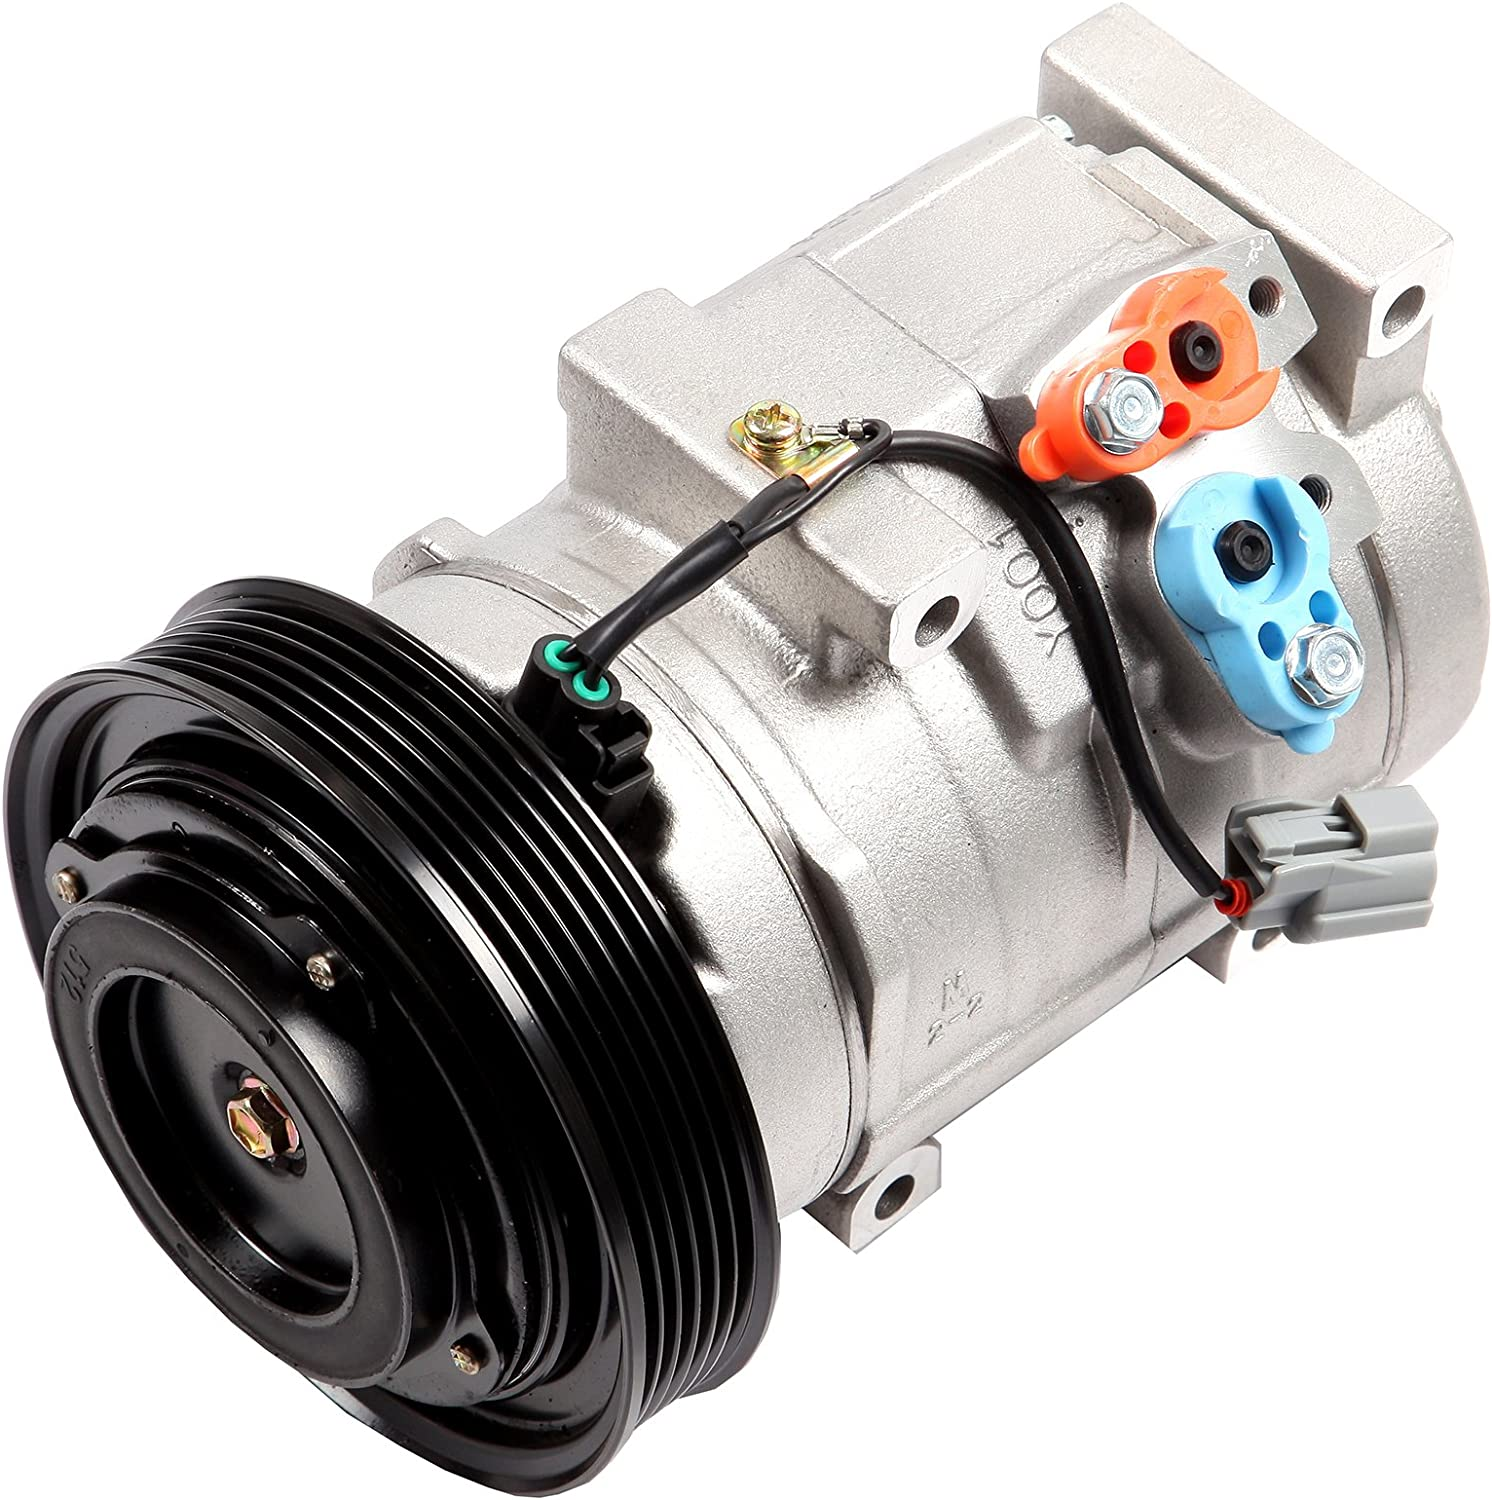 GDSMOTU Air Conditioning Ultra-Cheap Deals Compressor and CO Clutch 10736 Seattle Mall Assembly